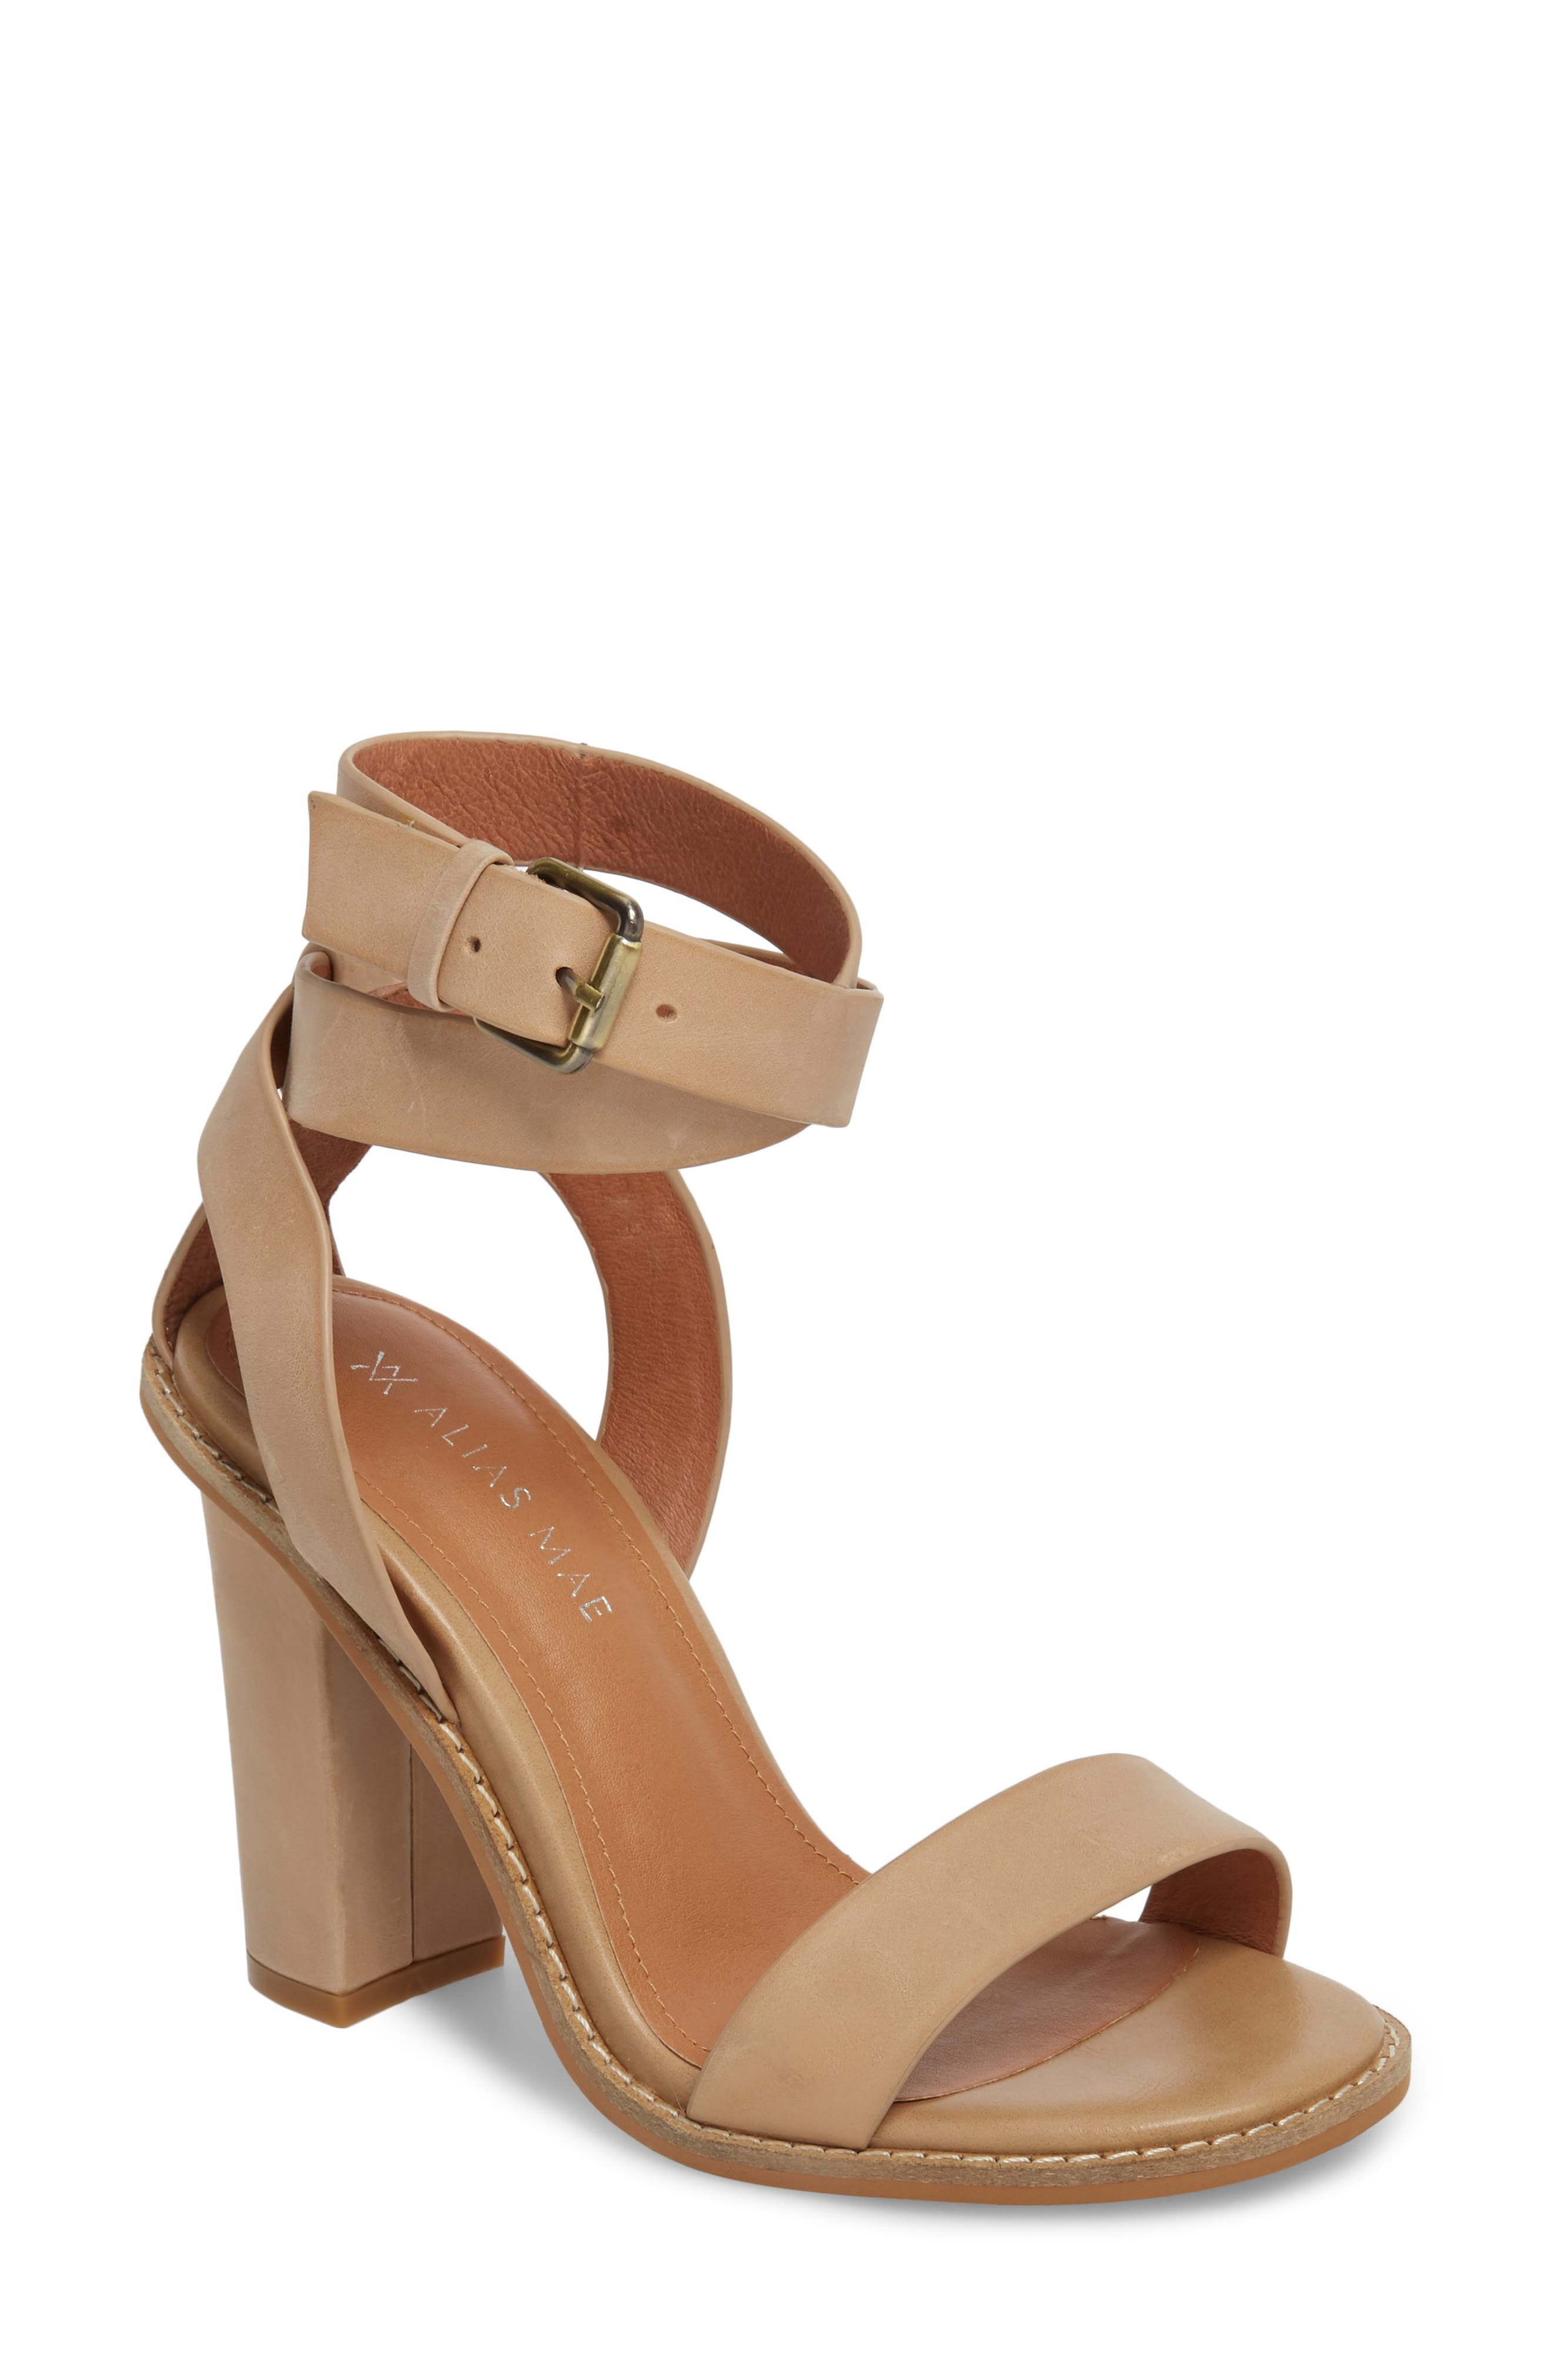 Calito Ankle Strap Sandal,                             Main thumbnail 1, color,                             Natural Leather